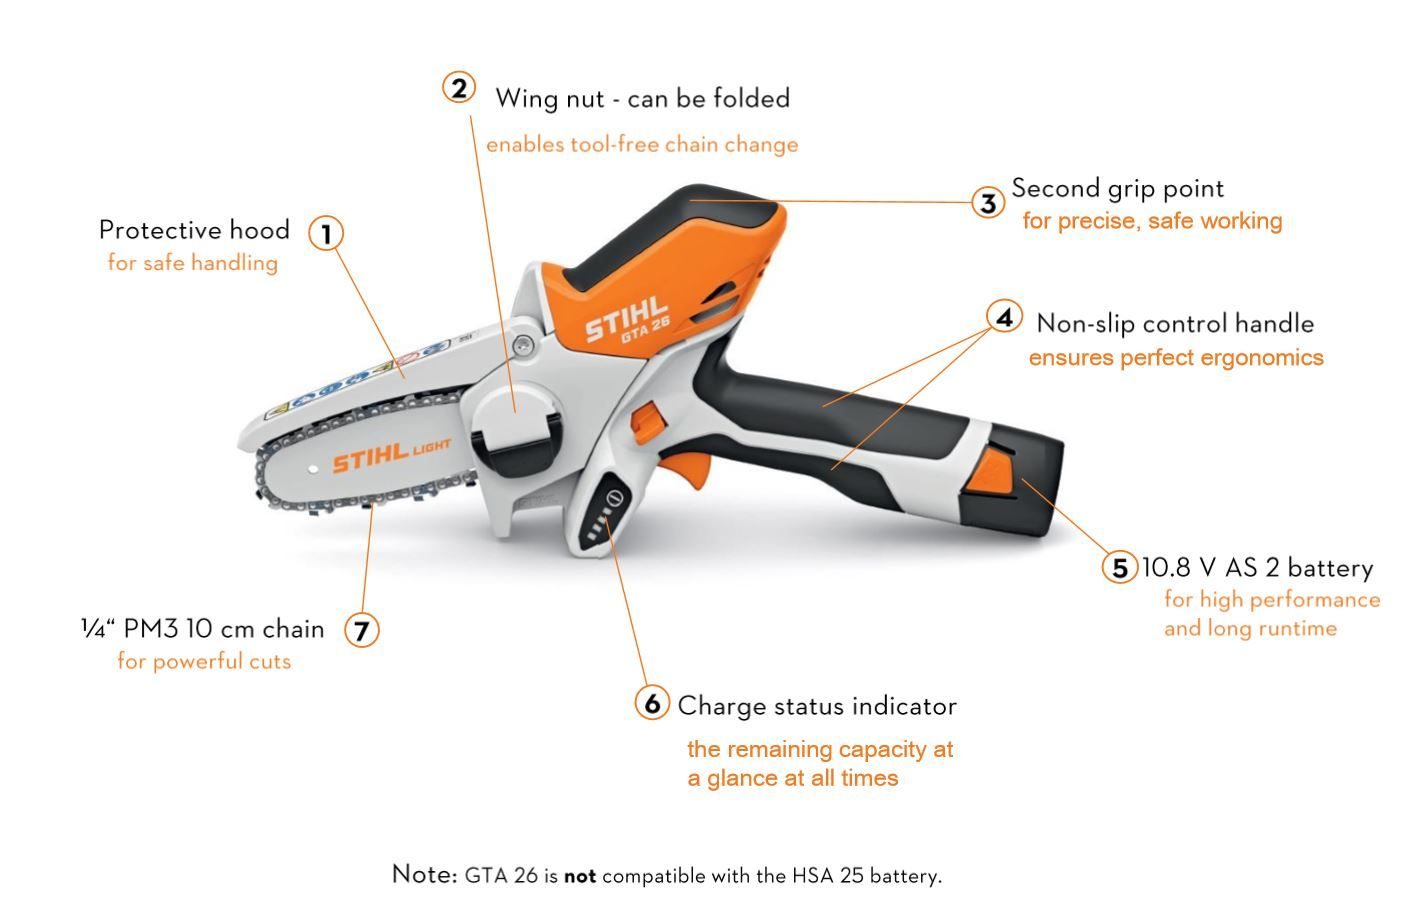 Features of the STIHL GTA 26